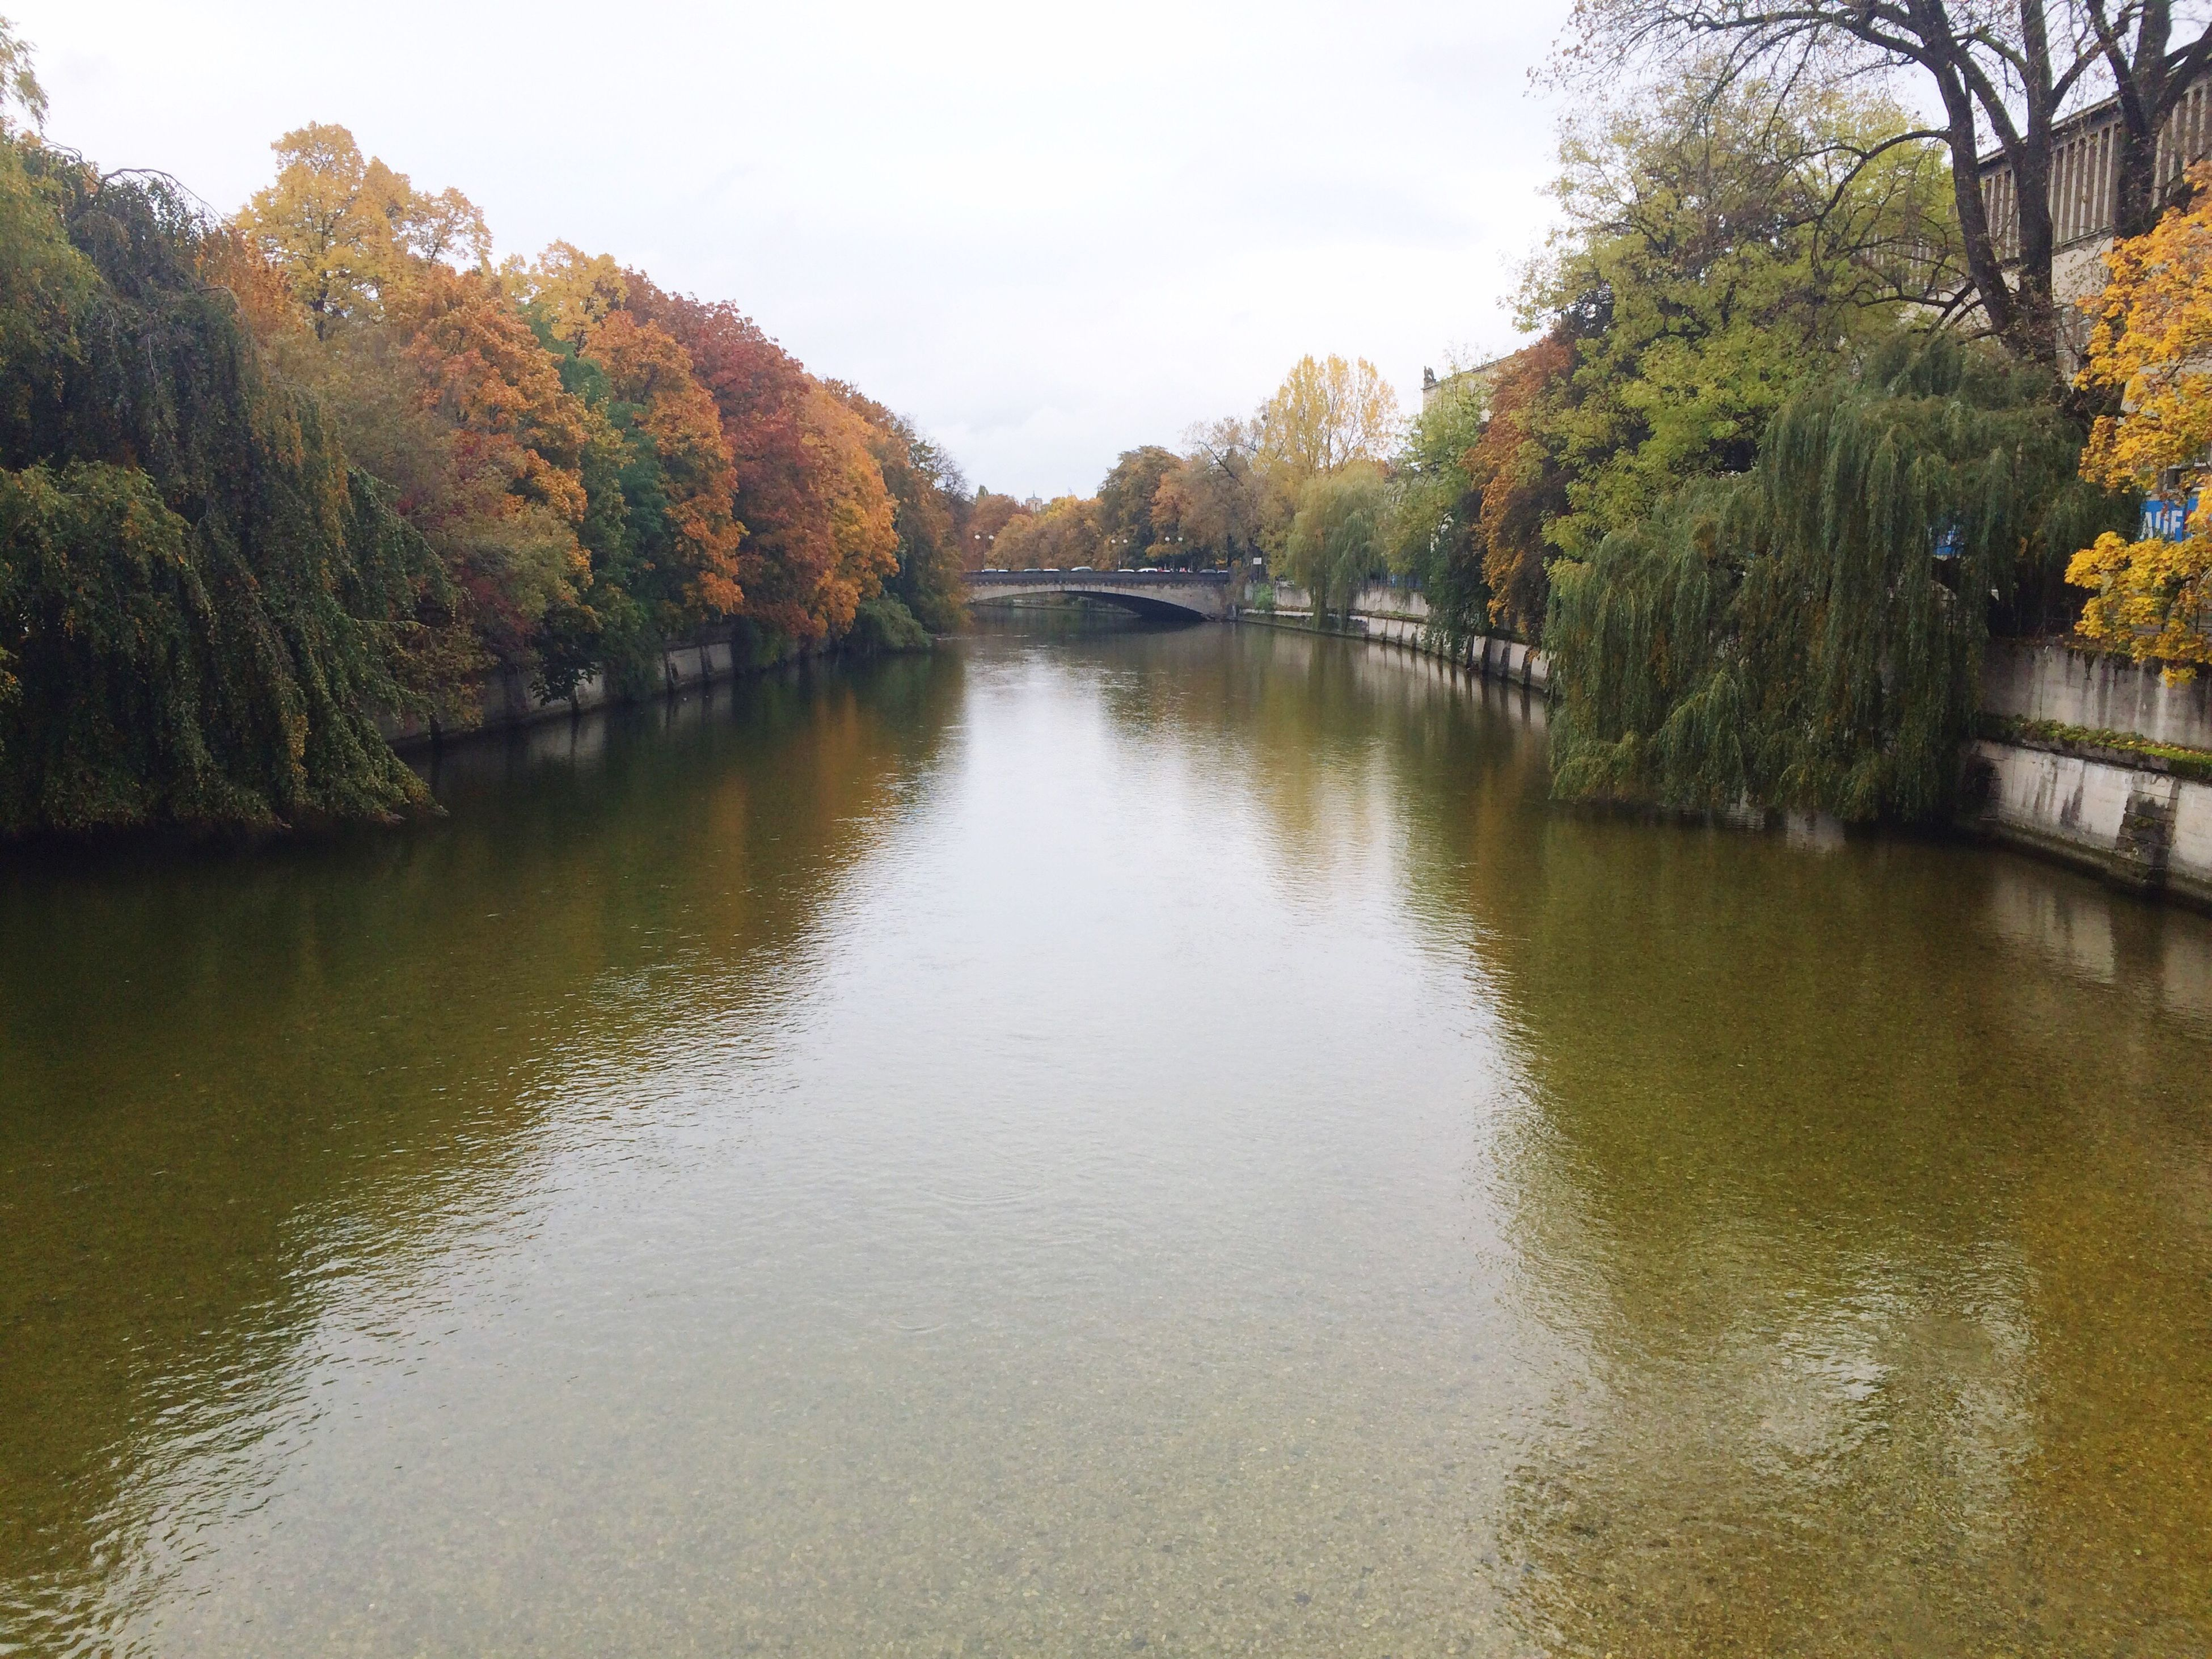 tree, water, waterfront, canal, river, reflection, tranquil scene, autumn, growth, change, tranquility, scenics, diminishing perspective, bridge - man made structure, nature, beauty in nature, day, travel destinations, sky, treelined, outdoors, tourism, no people, riverbank, park, non-urban scene